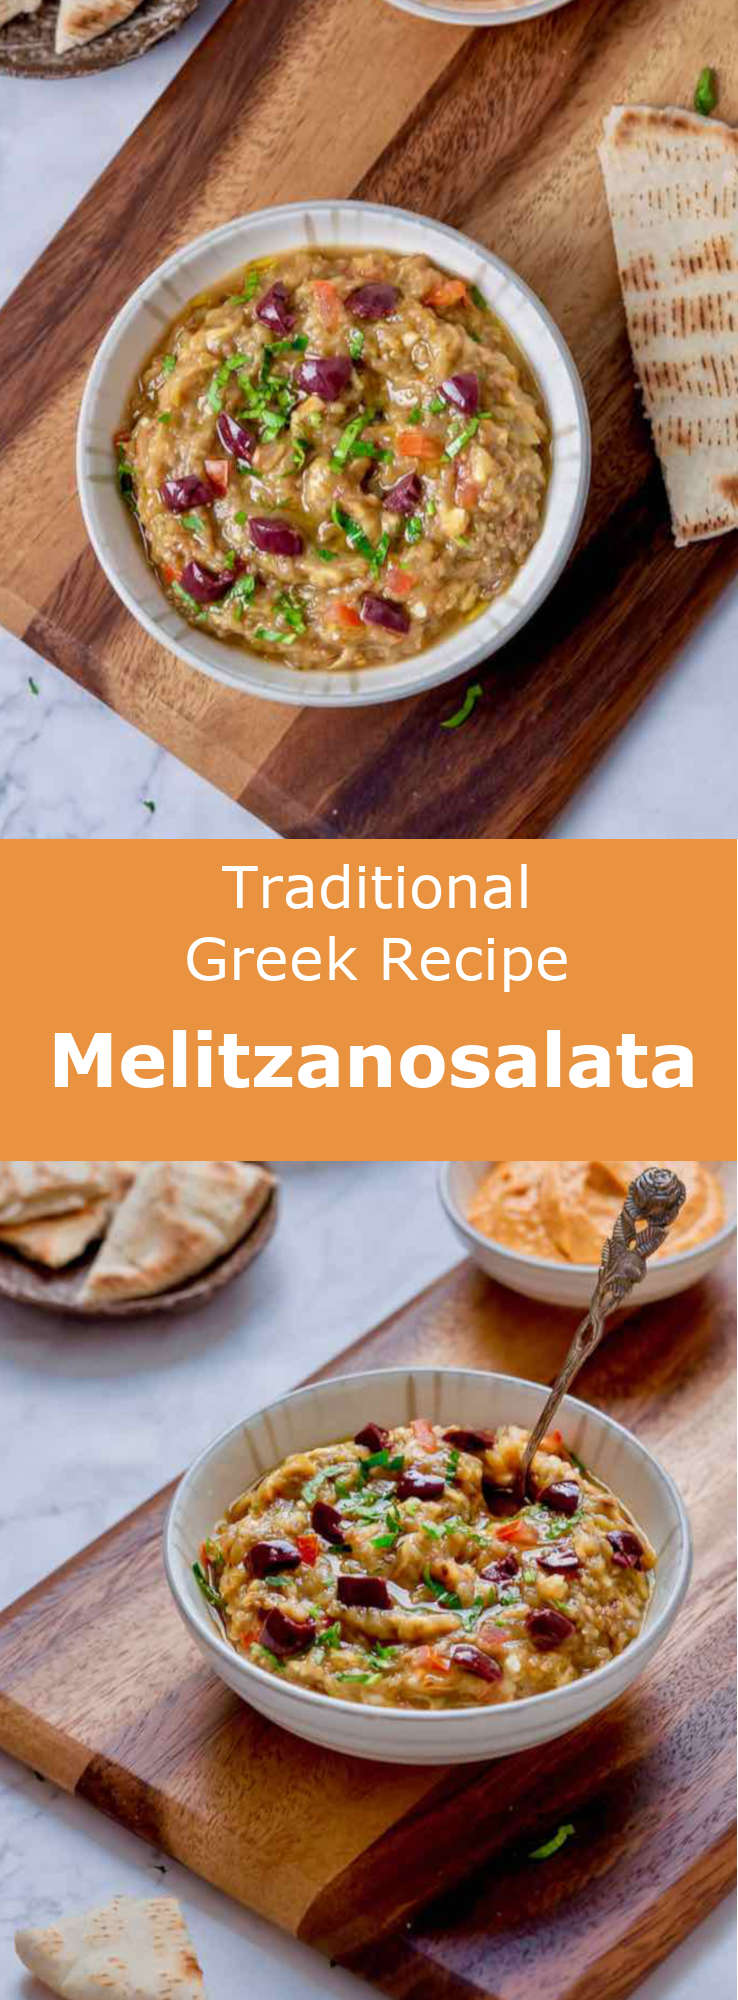 Melitzanosalata is a delicious mezze prepared with eggplant that is flavored with olive oil and lemon juice, popular in Cyprus and Greece. #Greece #GreekCuisine #GreekFood #GreekRecipe #MediterraneanCuisine #WorldCuisine #196flavors